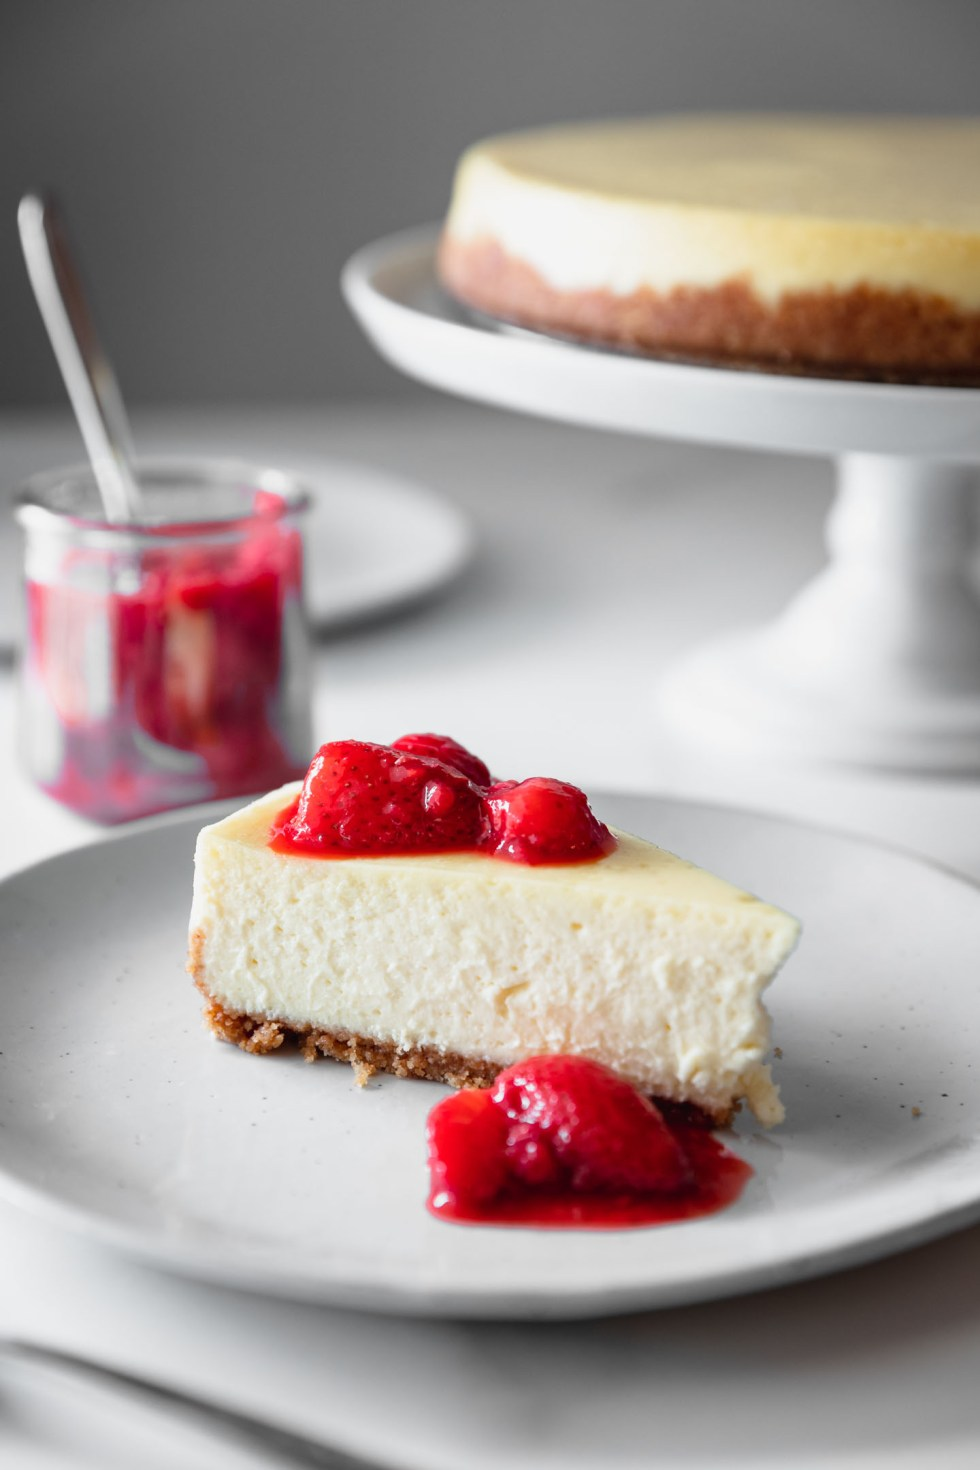 Closeup of new york style cheesecake with bright red berries on top